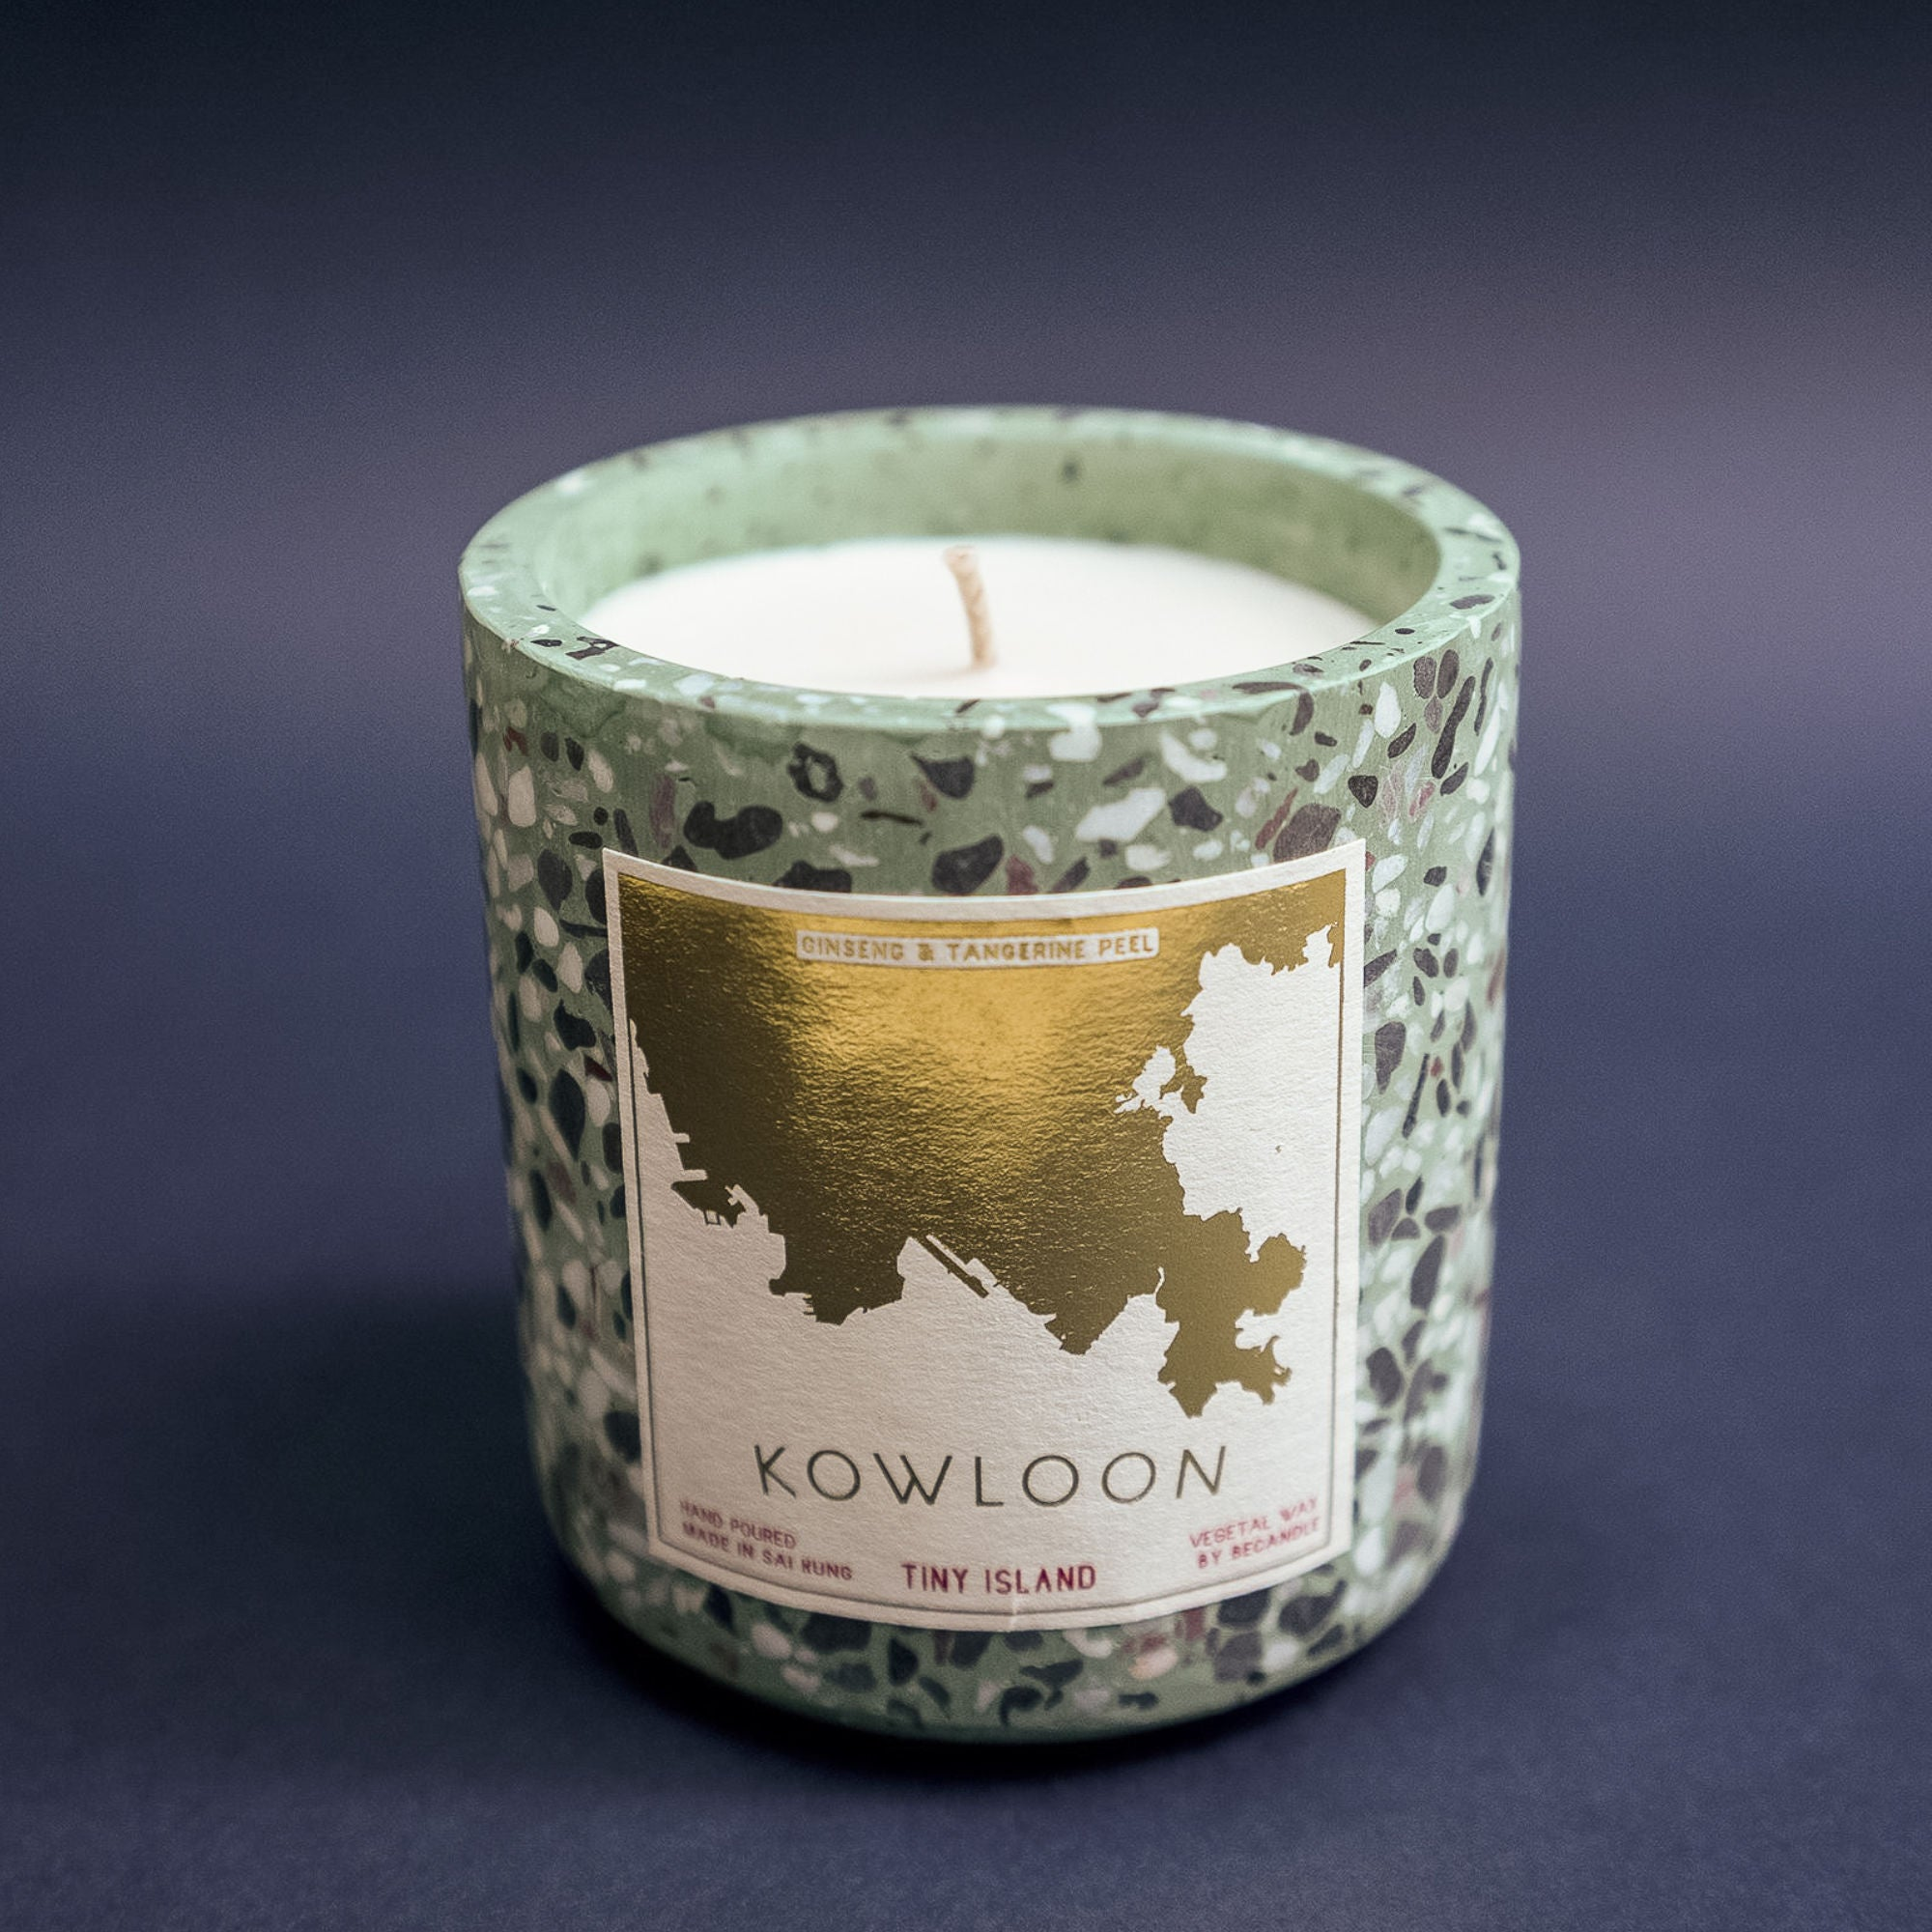 Tiny Island Kowloon Scented Candle